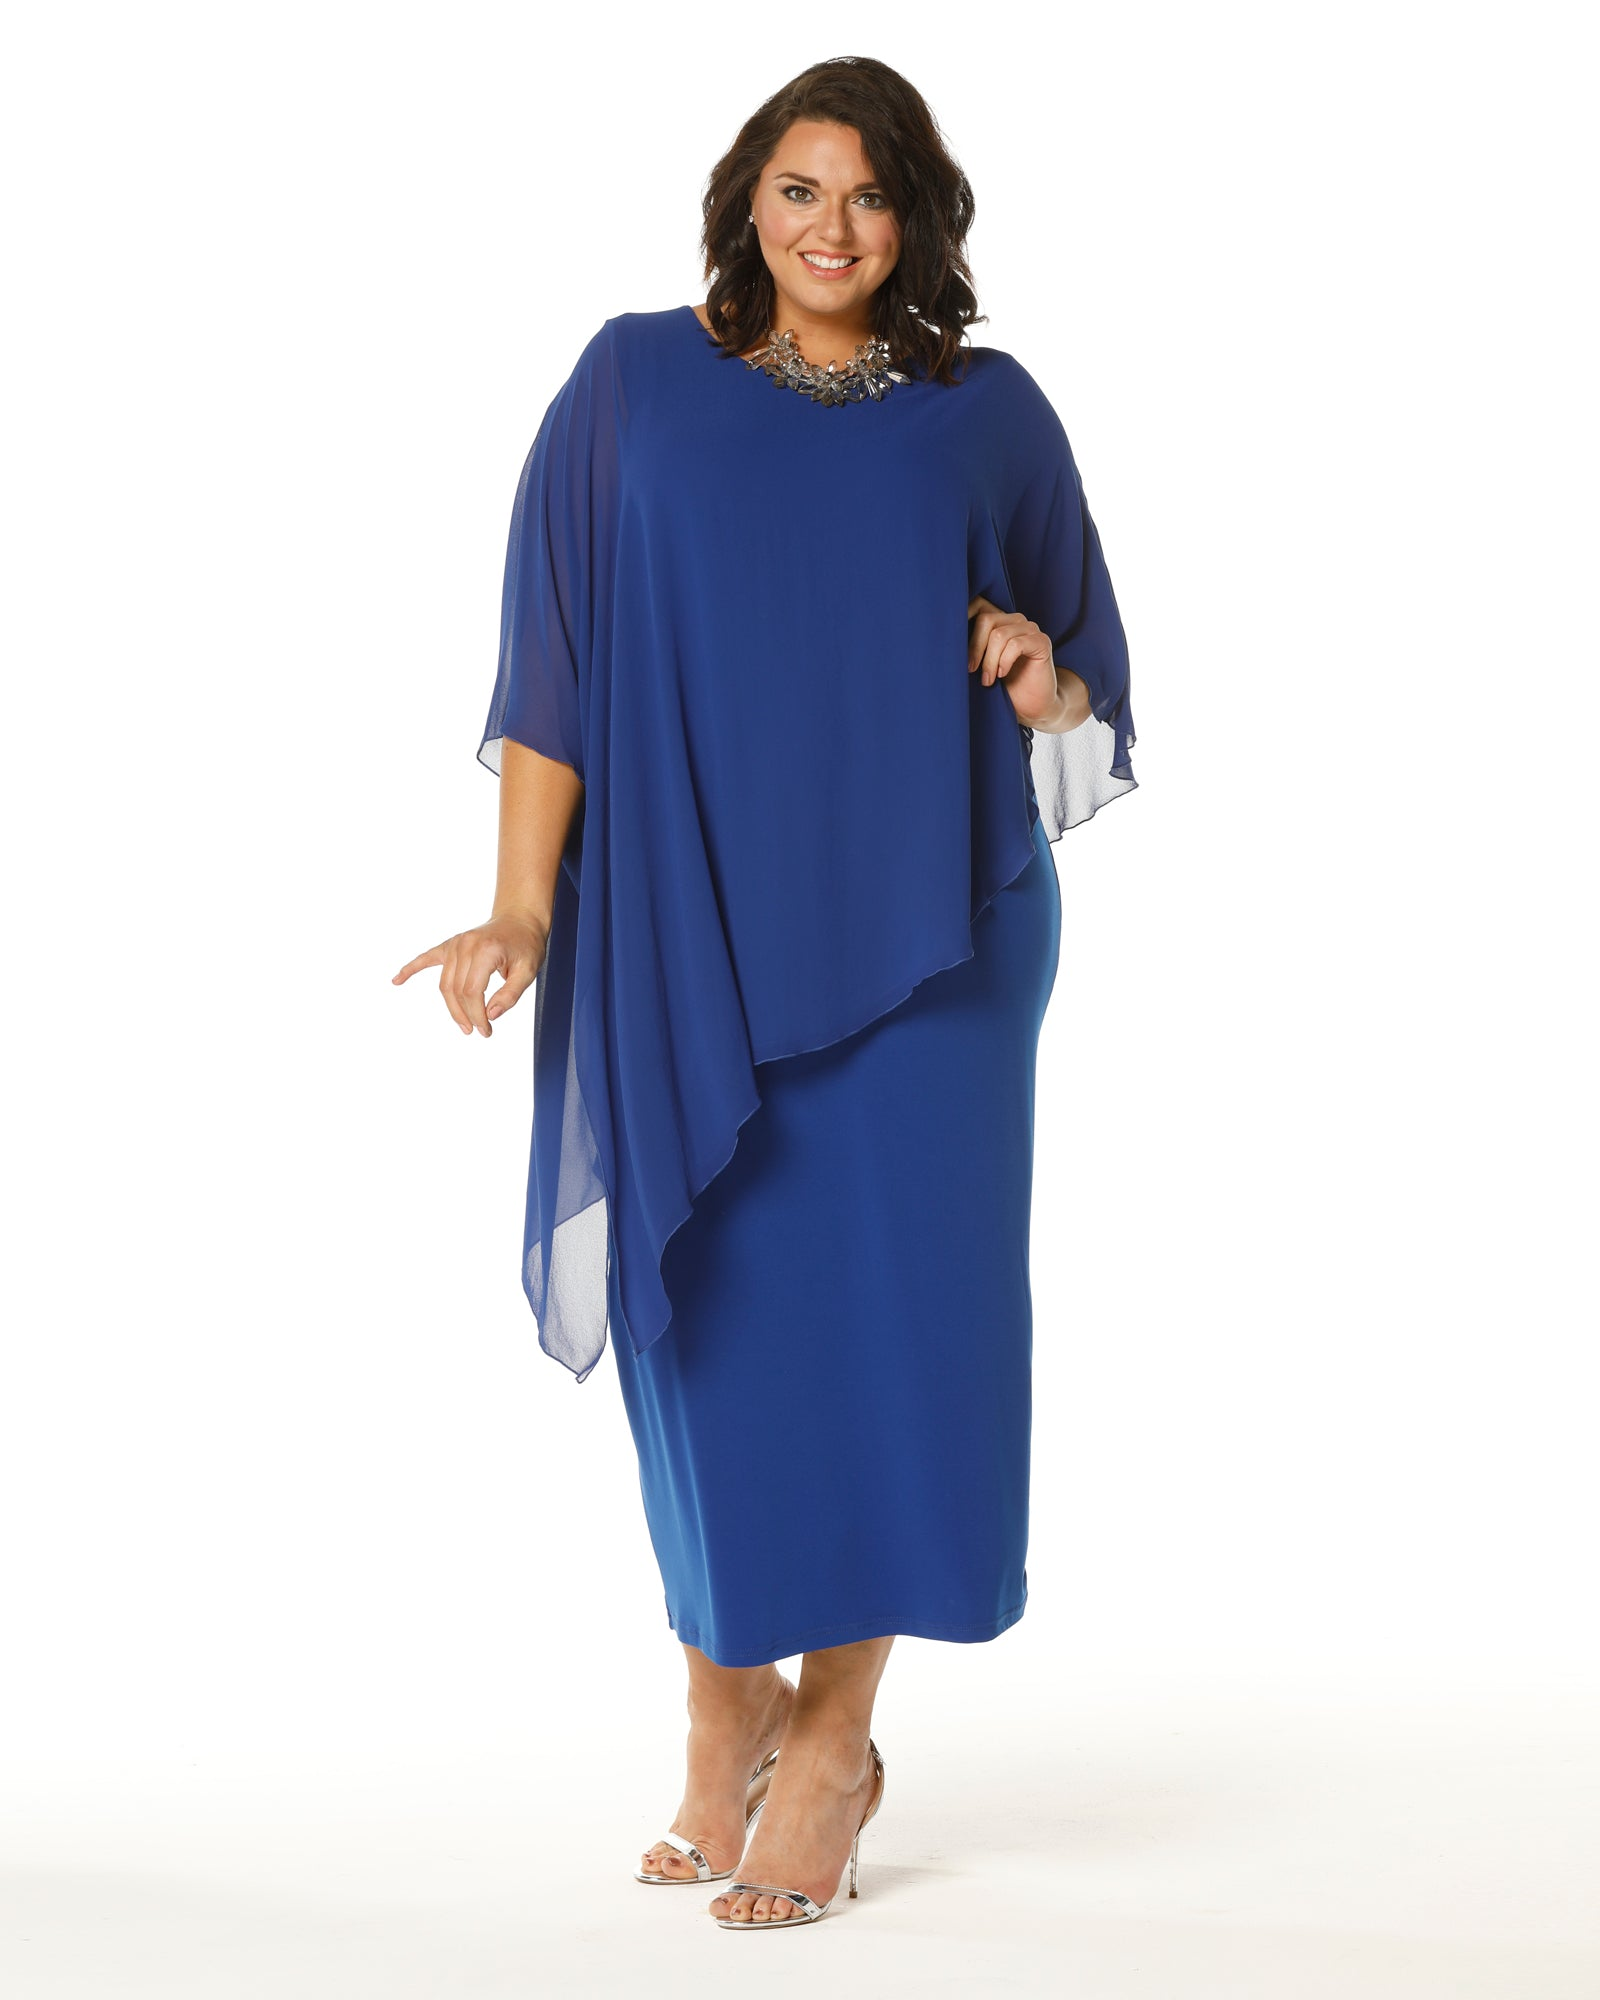 Room To Move Dress, Plus size evening dresses